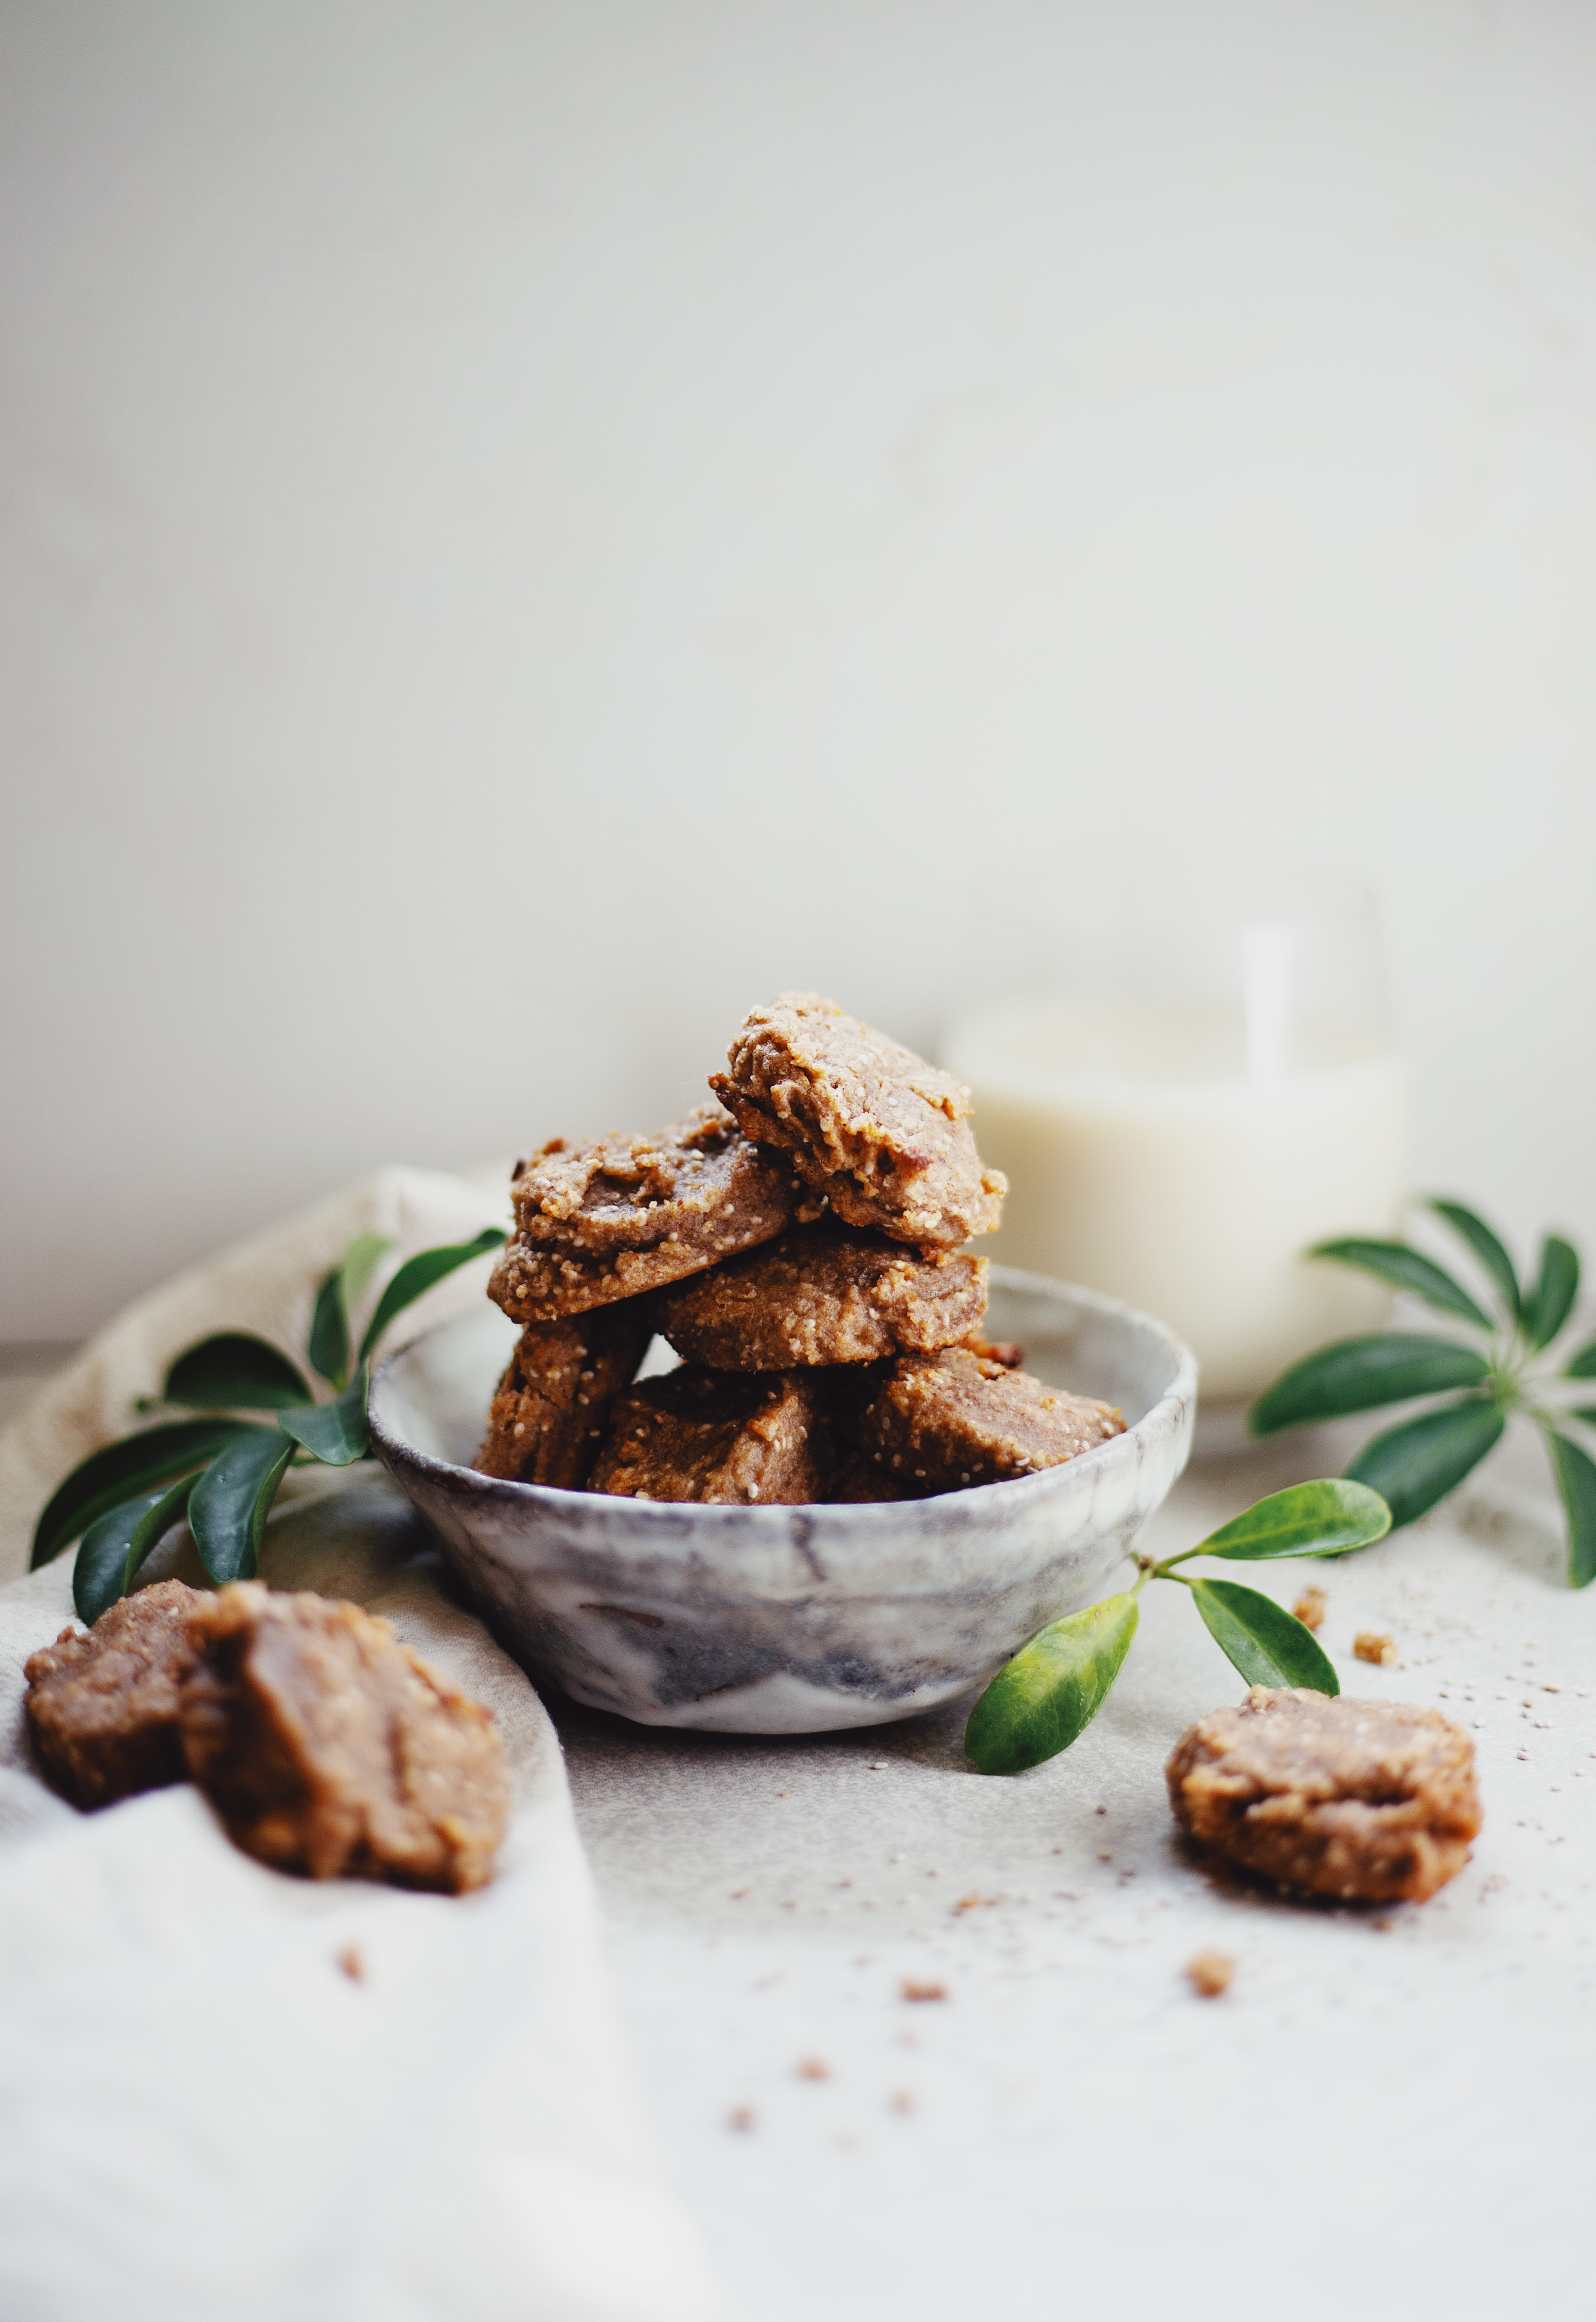 Vegan and Gluten Free Cinnamon Chia Cookies Recipe